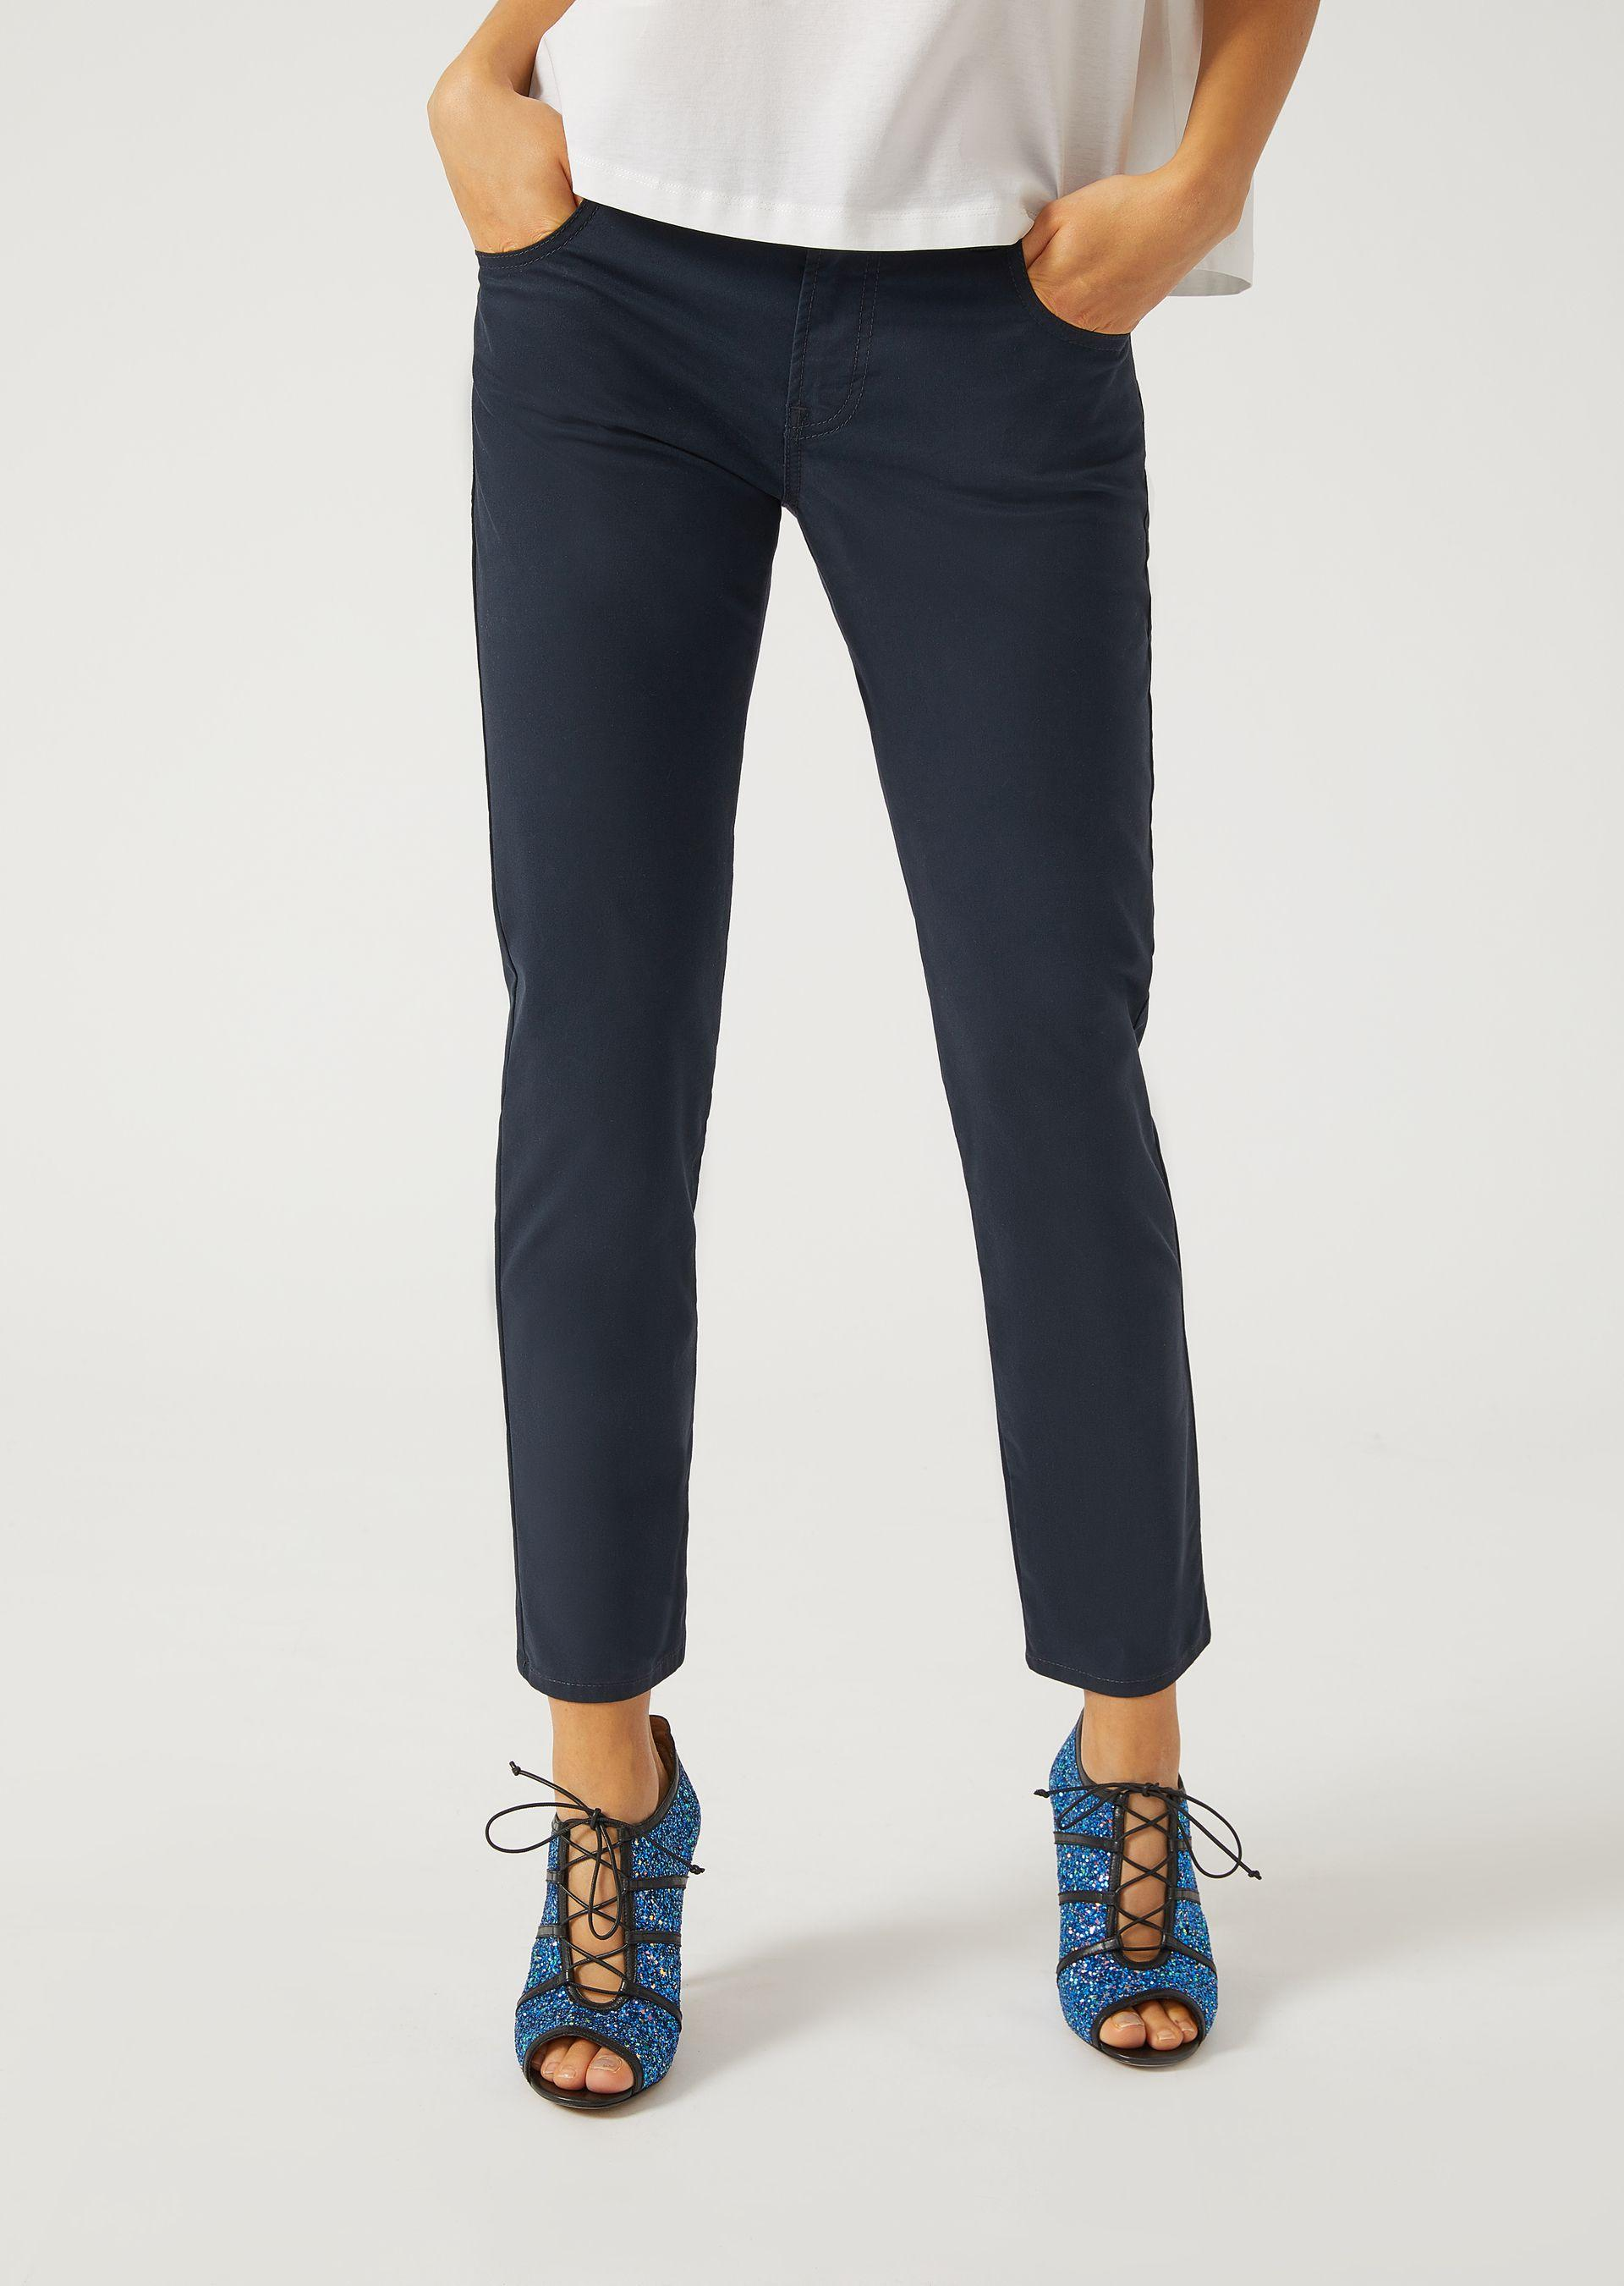 Emporio Armani Straight Jeans - Item 42658585 In Navy Blue ; Red